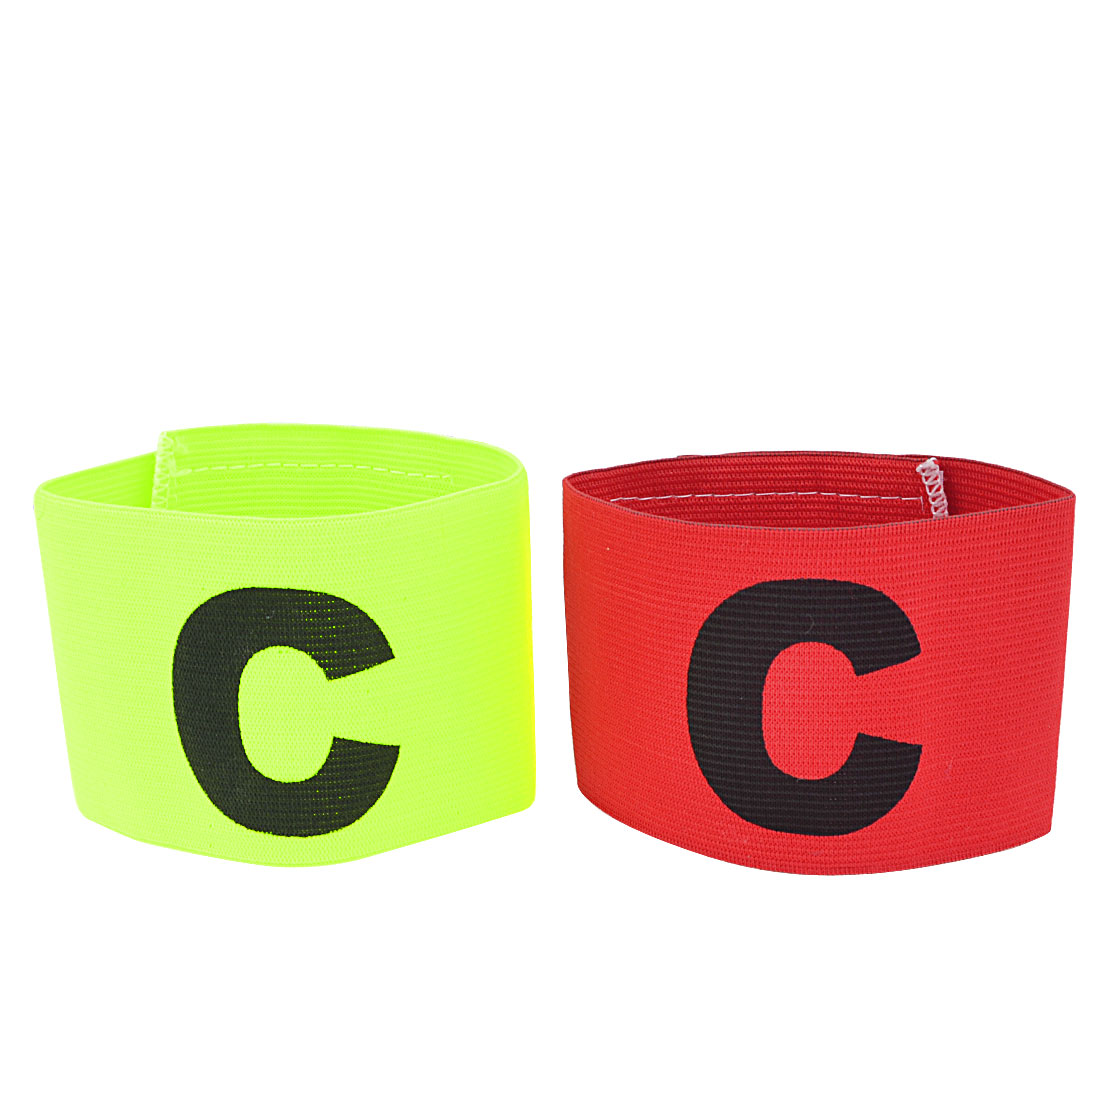 Hook Loop Closure Yellow Green Red Stretchy Football Captain Armband Badge 2 PCS